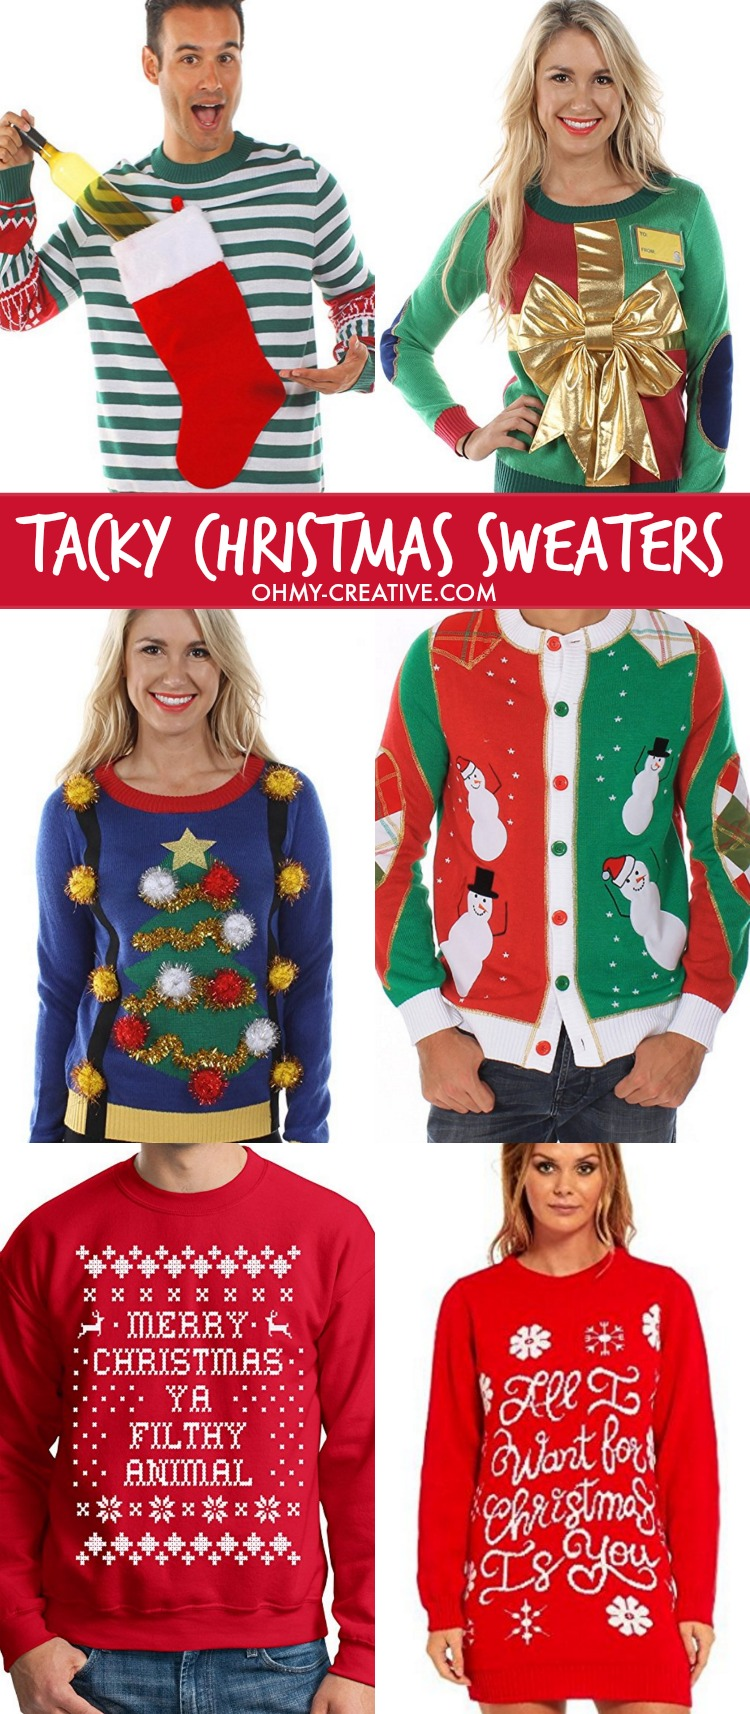 best tacky ugly christmas sweaters ohmy creative com - The Best Ugly Christmas Sweaters